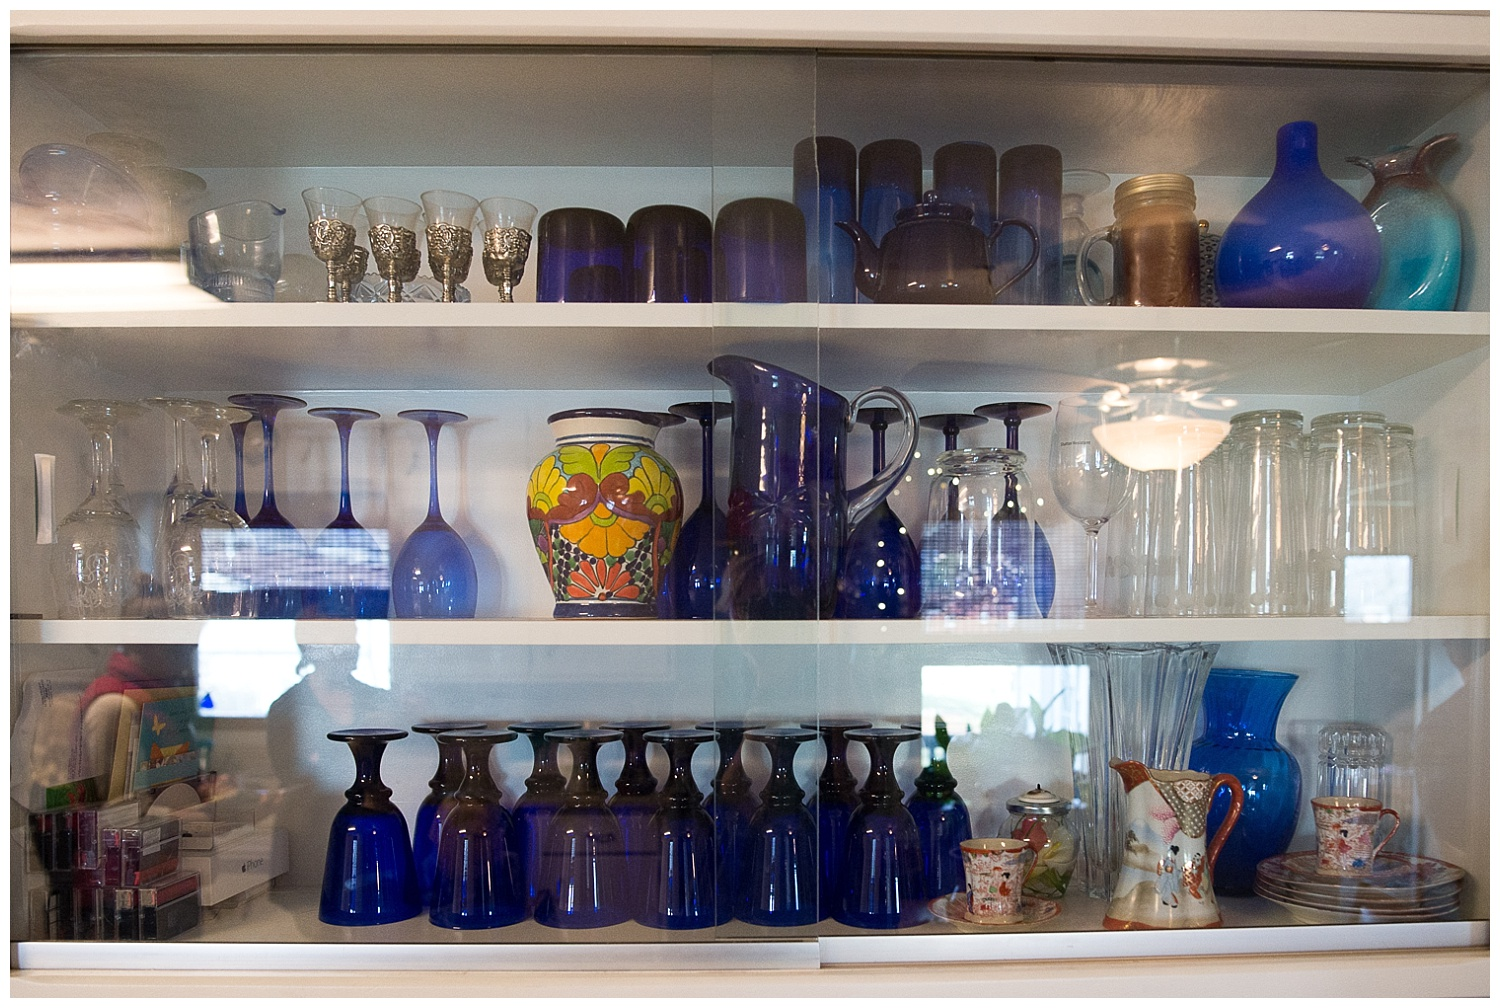 Monica fell in love with blue glass and has been collecting it since college. The etched champagne flutes from her and Aaron's wedding as well as auction finds of her mother, Rita,reside in this cupboard. The glass allows her to display these lovely mementos of her life.